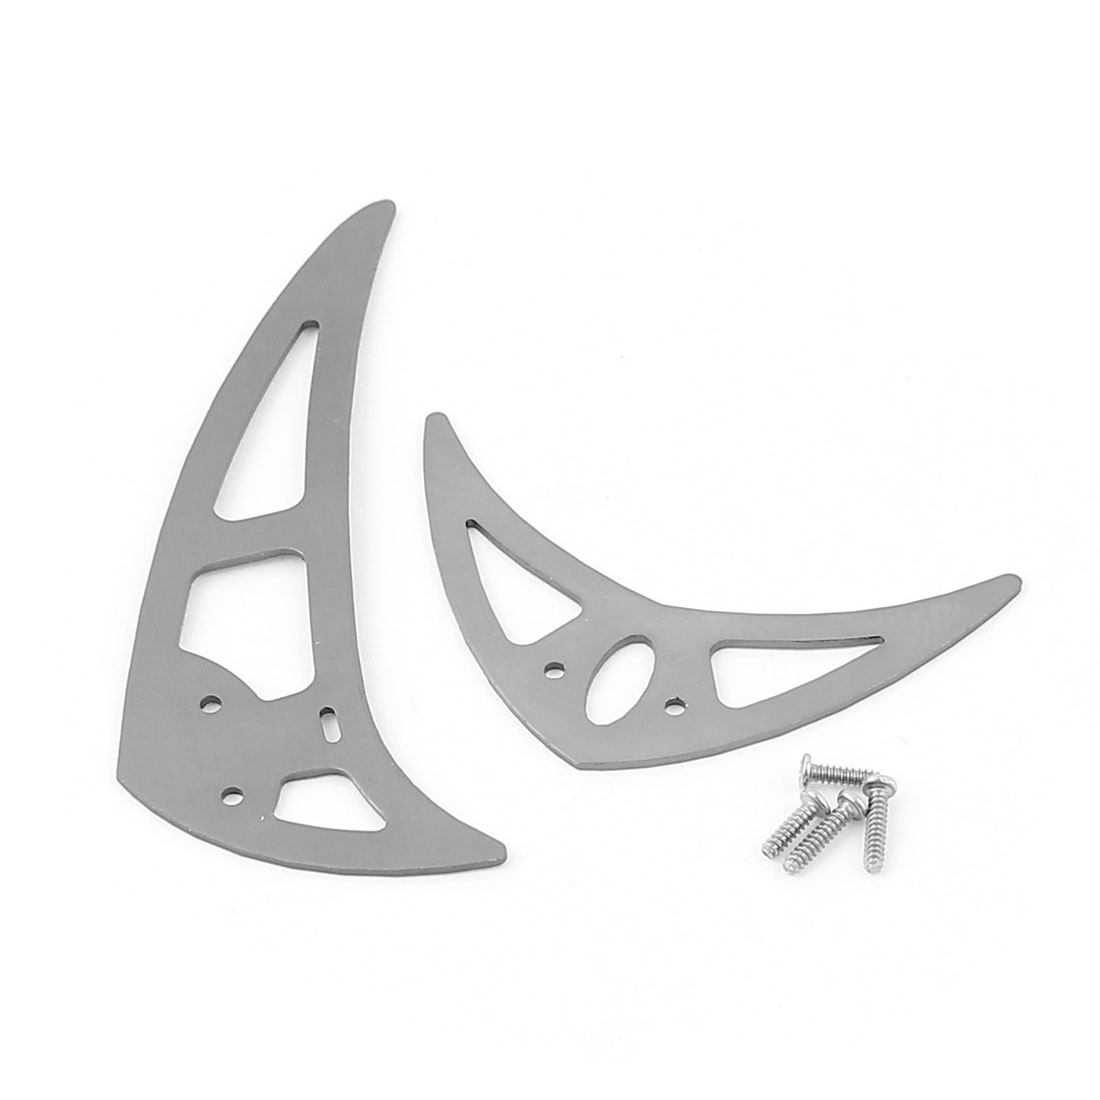 RC Aircraft Plane Tail Balance Props Vanes 2pcs for Double Horse 9116